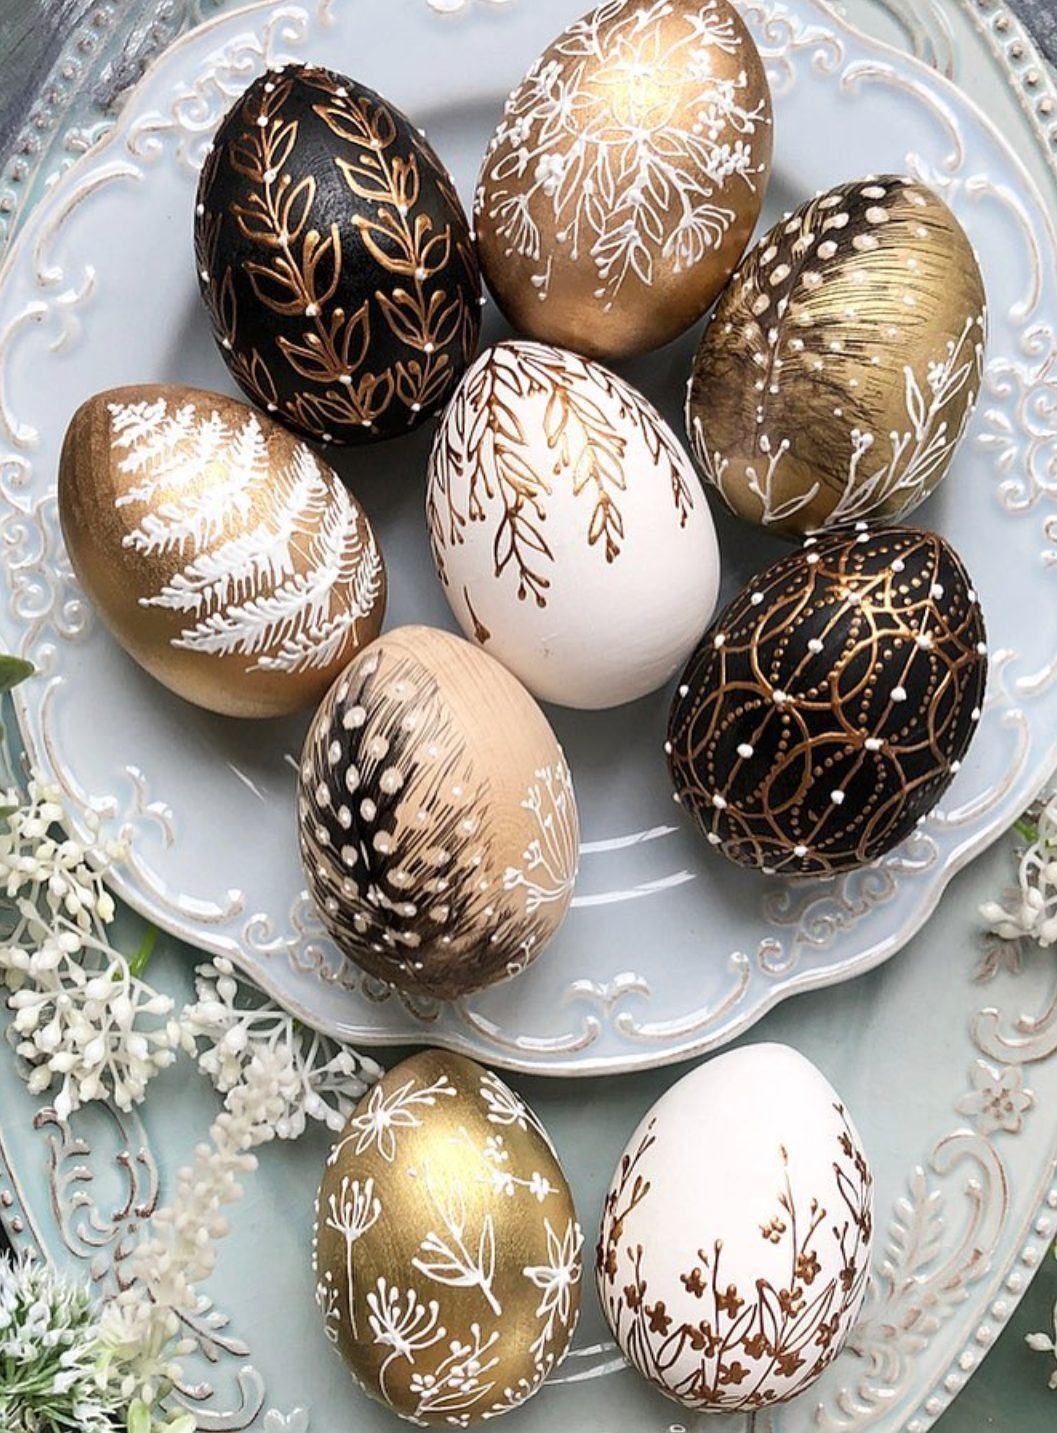 Black and gold creatively painted Easter eggs